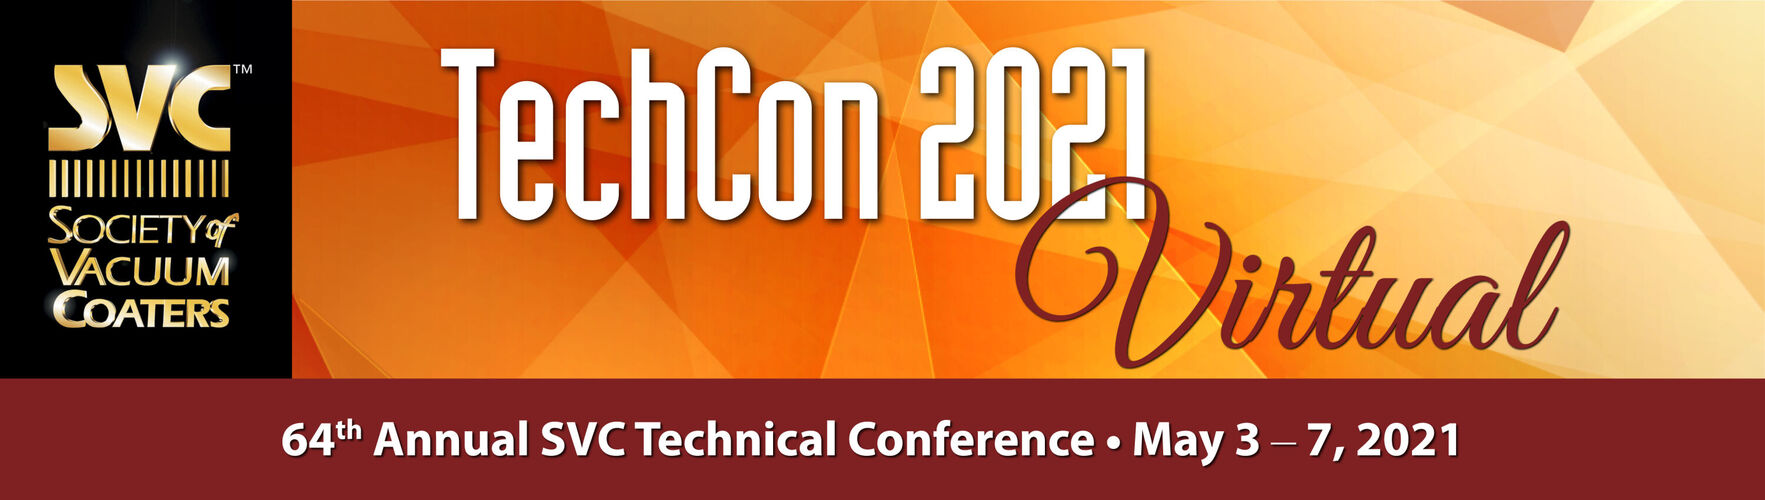 TechCon 2021 - Society of Vacuum Coaters - Virtual Conference